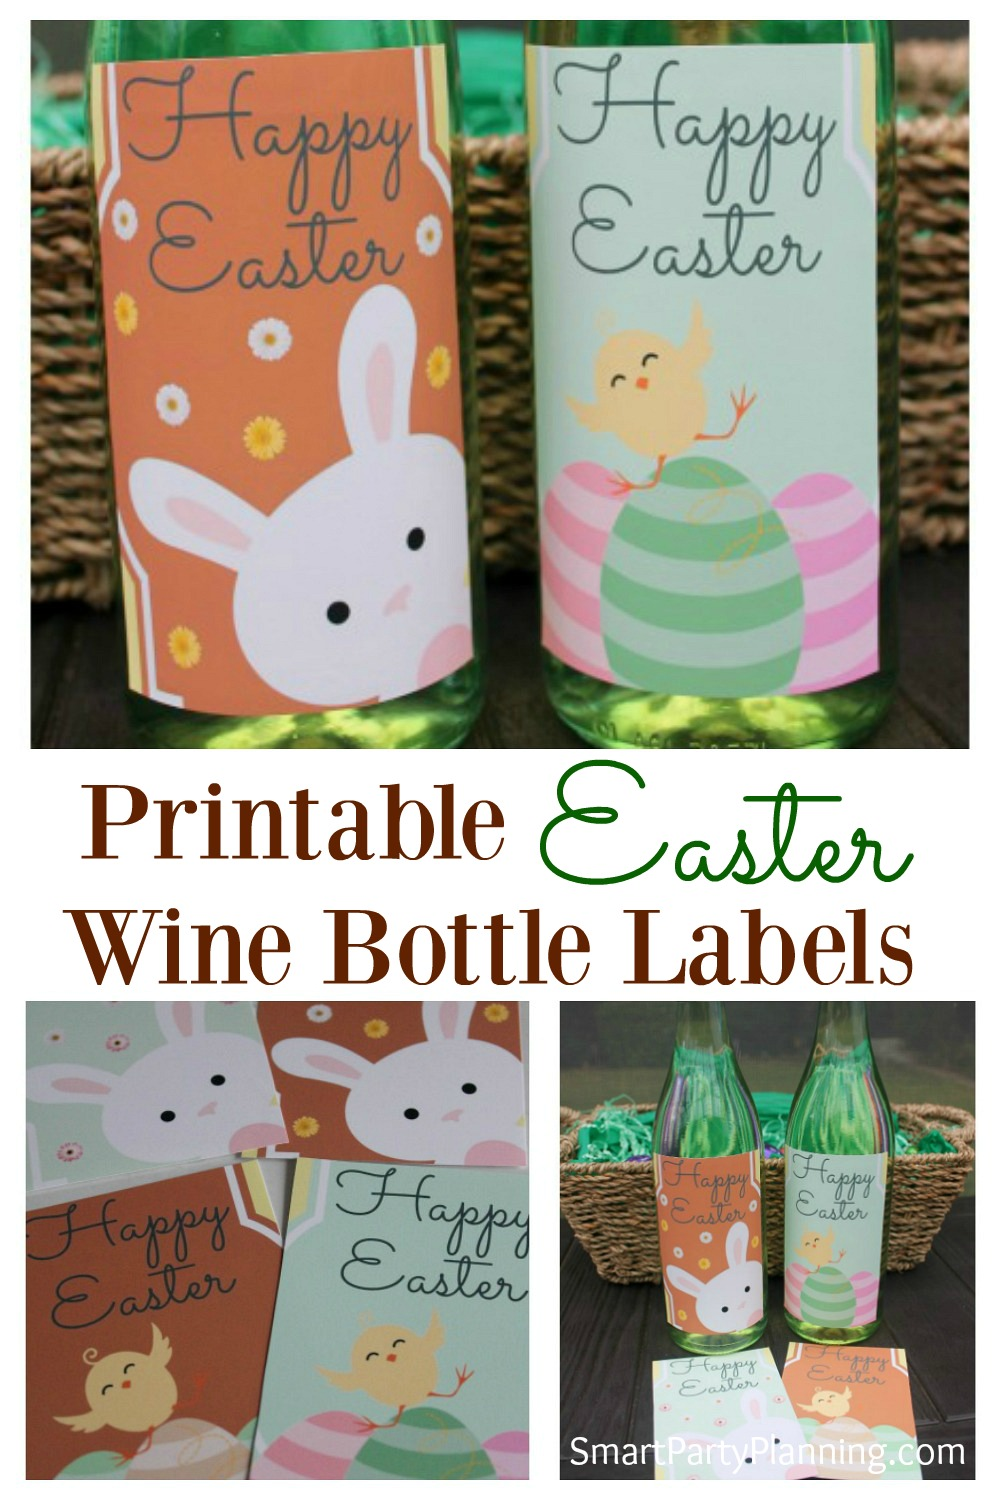 Set of four adorable Easter wine bottle labels design.  Use these printable's as cute ideas for an alternative Easter gift or to decorate the table wine for Easter lunch. Simply remove the existing wine bottle label to achieve the perfect Easter look. #winebottlelabels #Printable #Easter